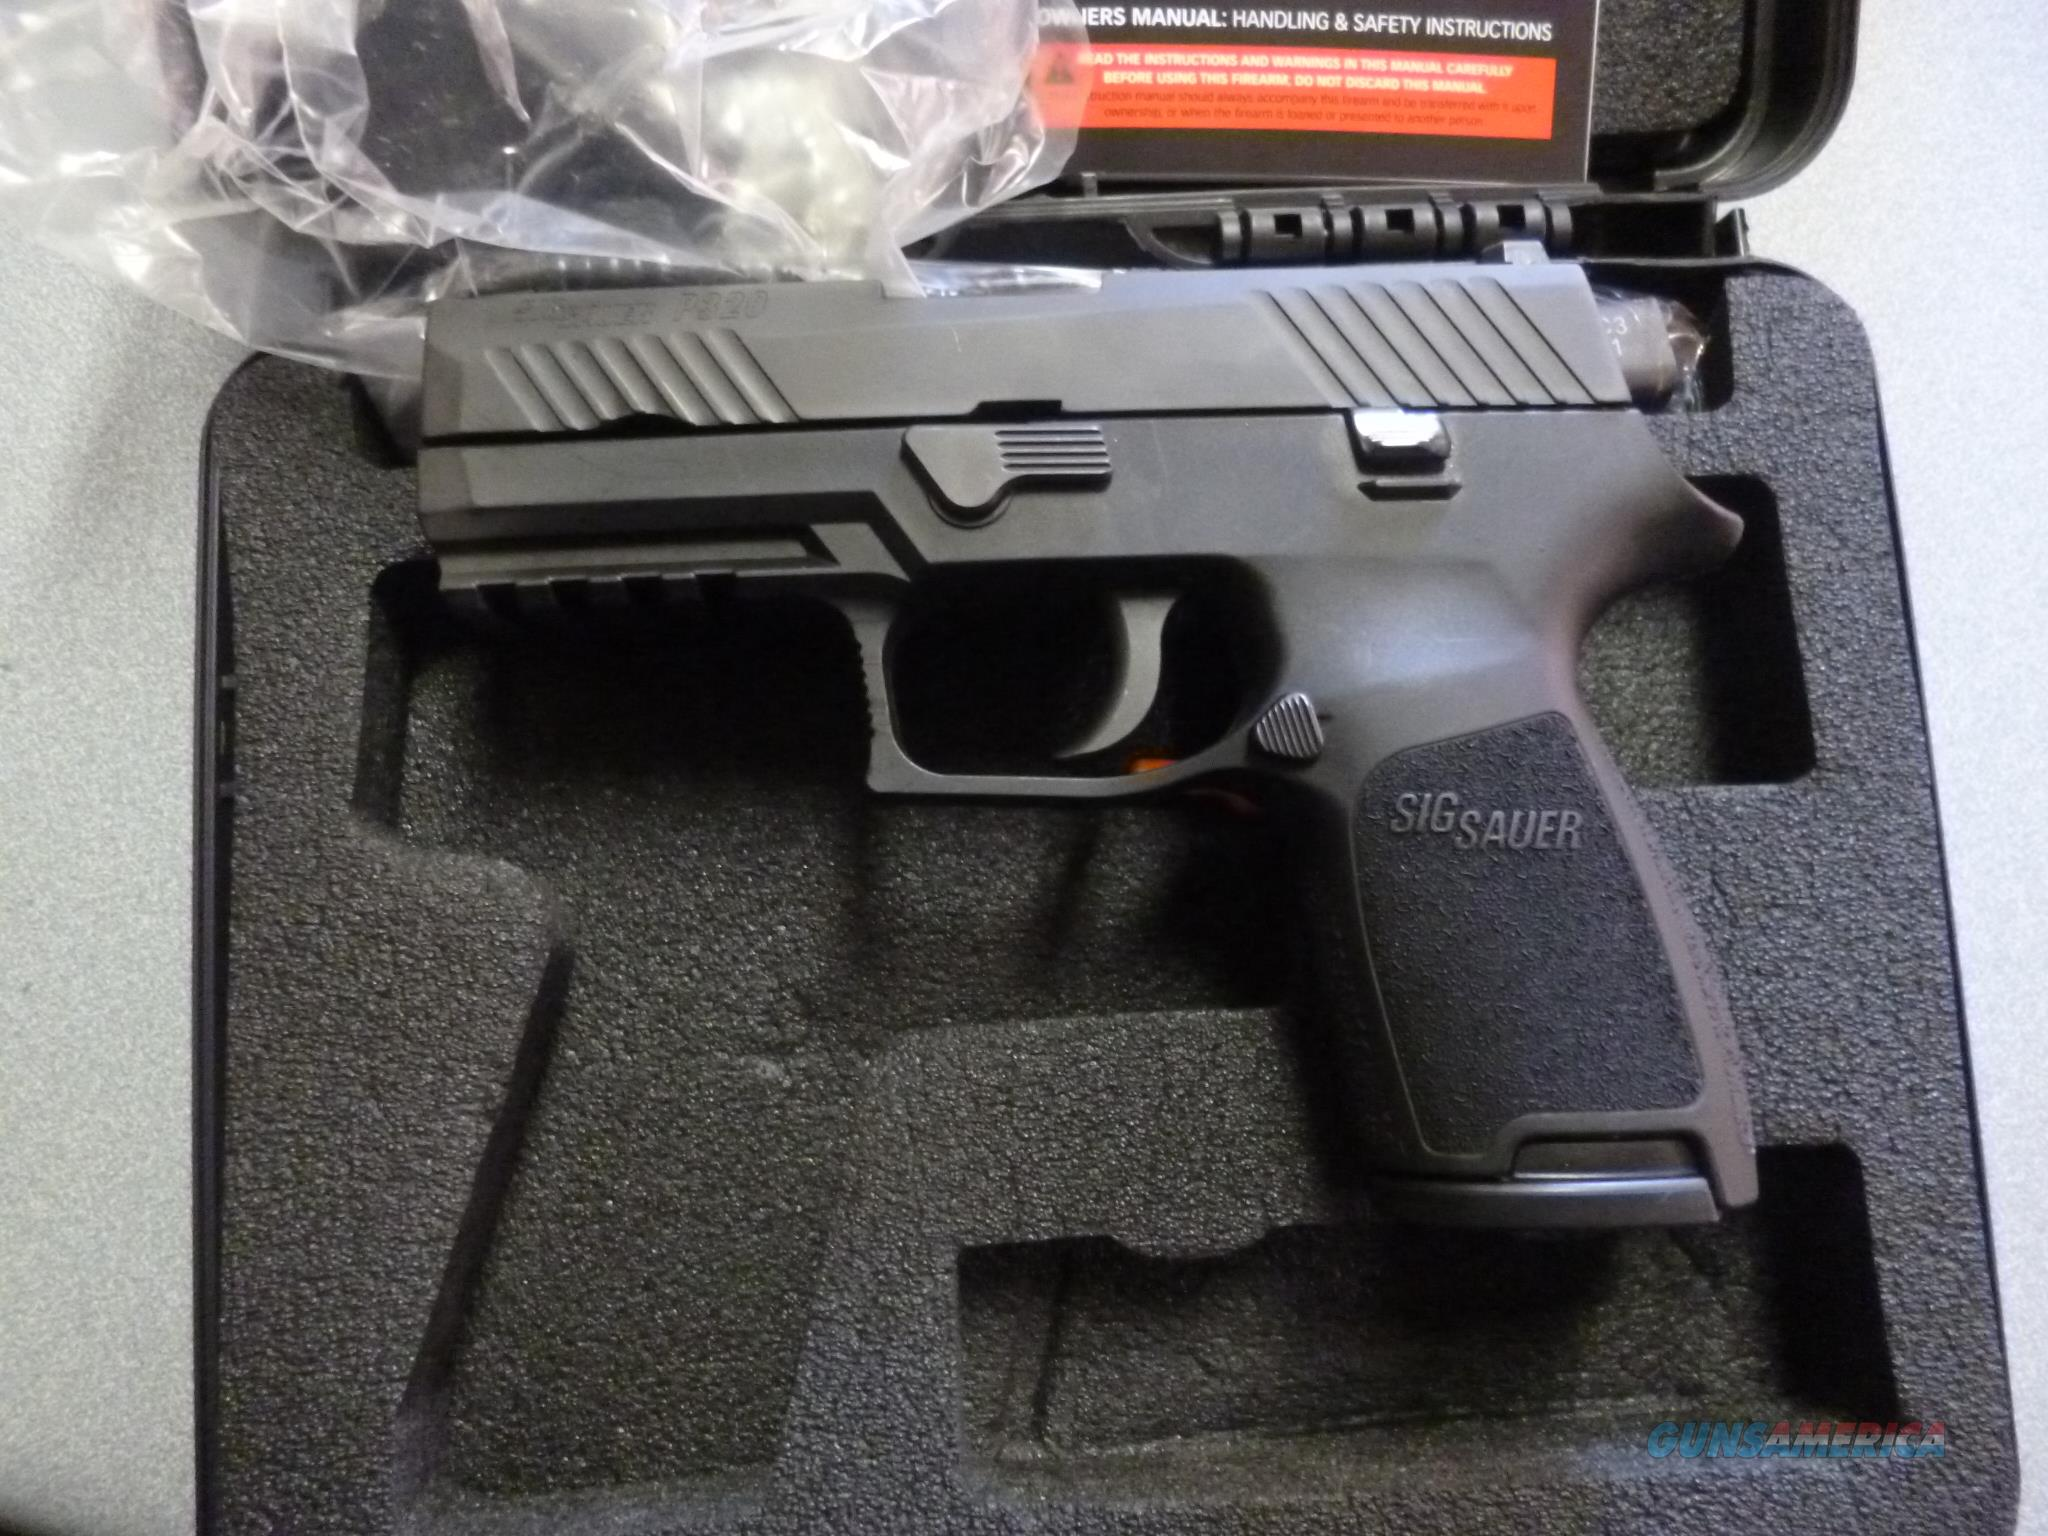 SIG p320 45 ACP with night sights and 3 mags  Guns > Pistols > Sig - Sauer/Sigarms Pistols > P320